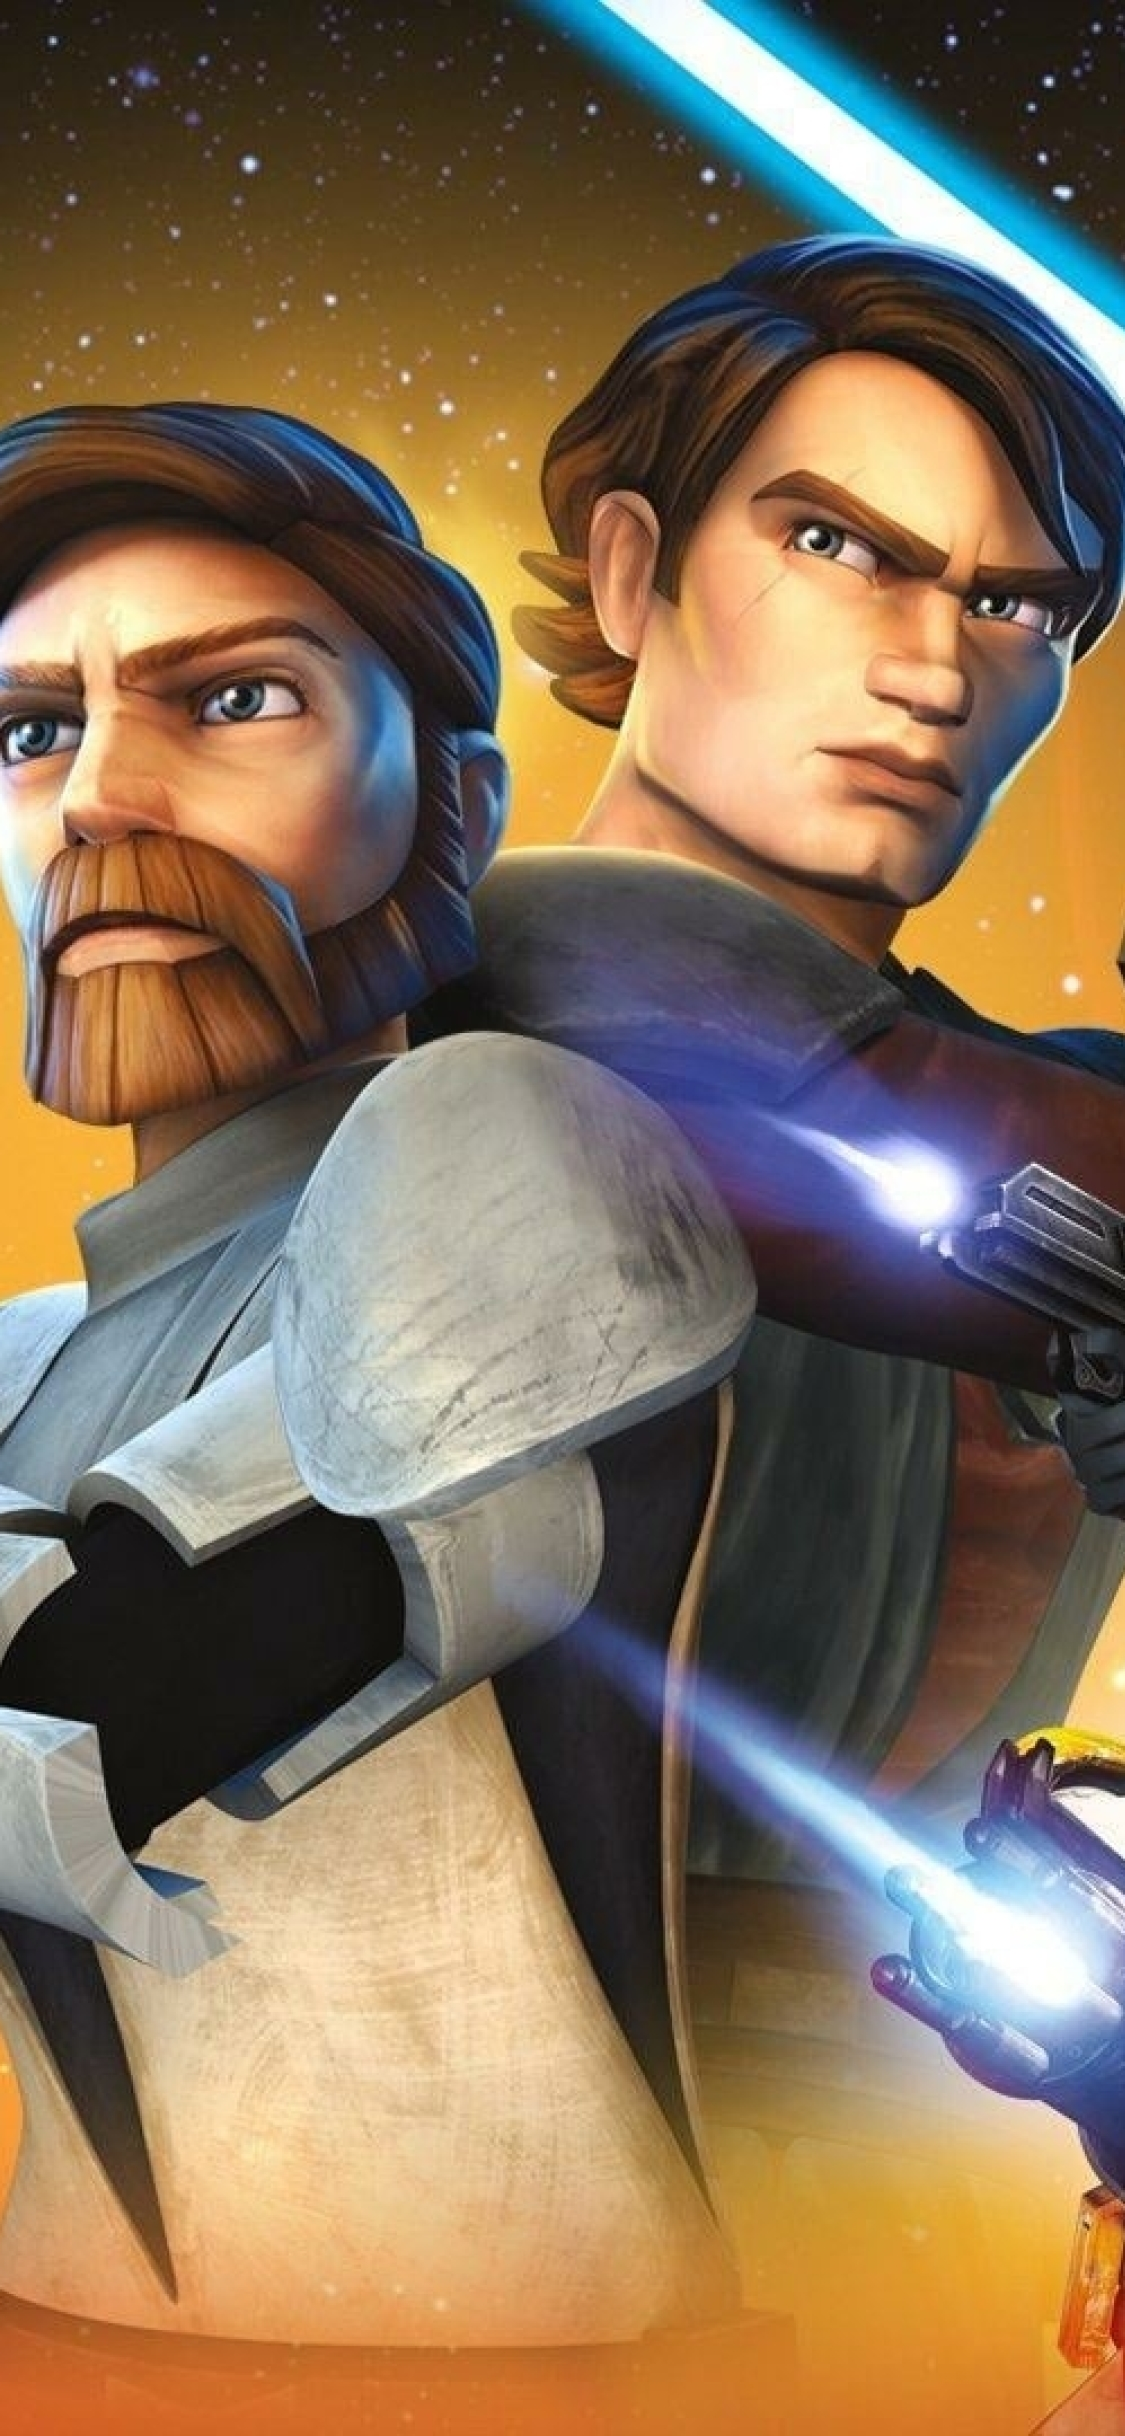 1125x2436 Star Wars The Clone Wars Season 7 Iphone Xs Iphone 10 Iphone X Wallpaper Hd Tv Series 4k Wallpapers Images Photos And Background